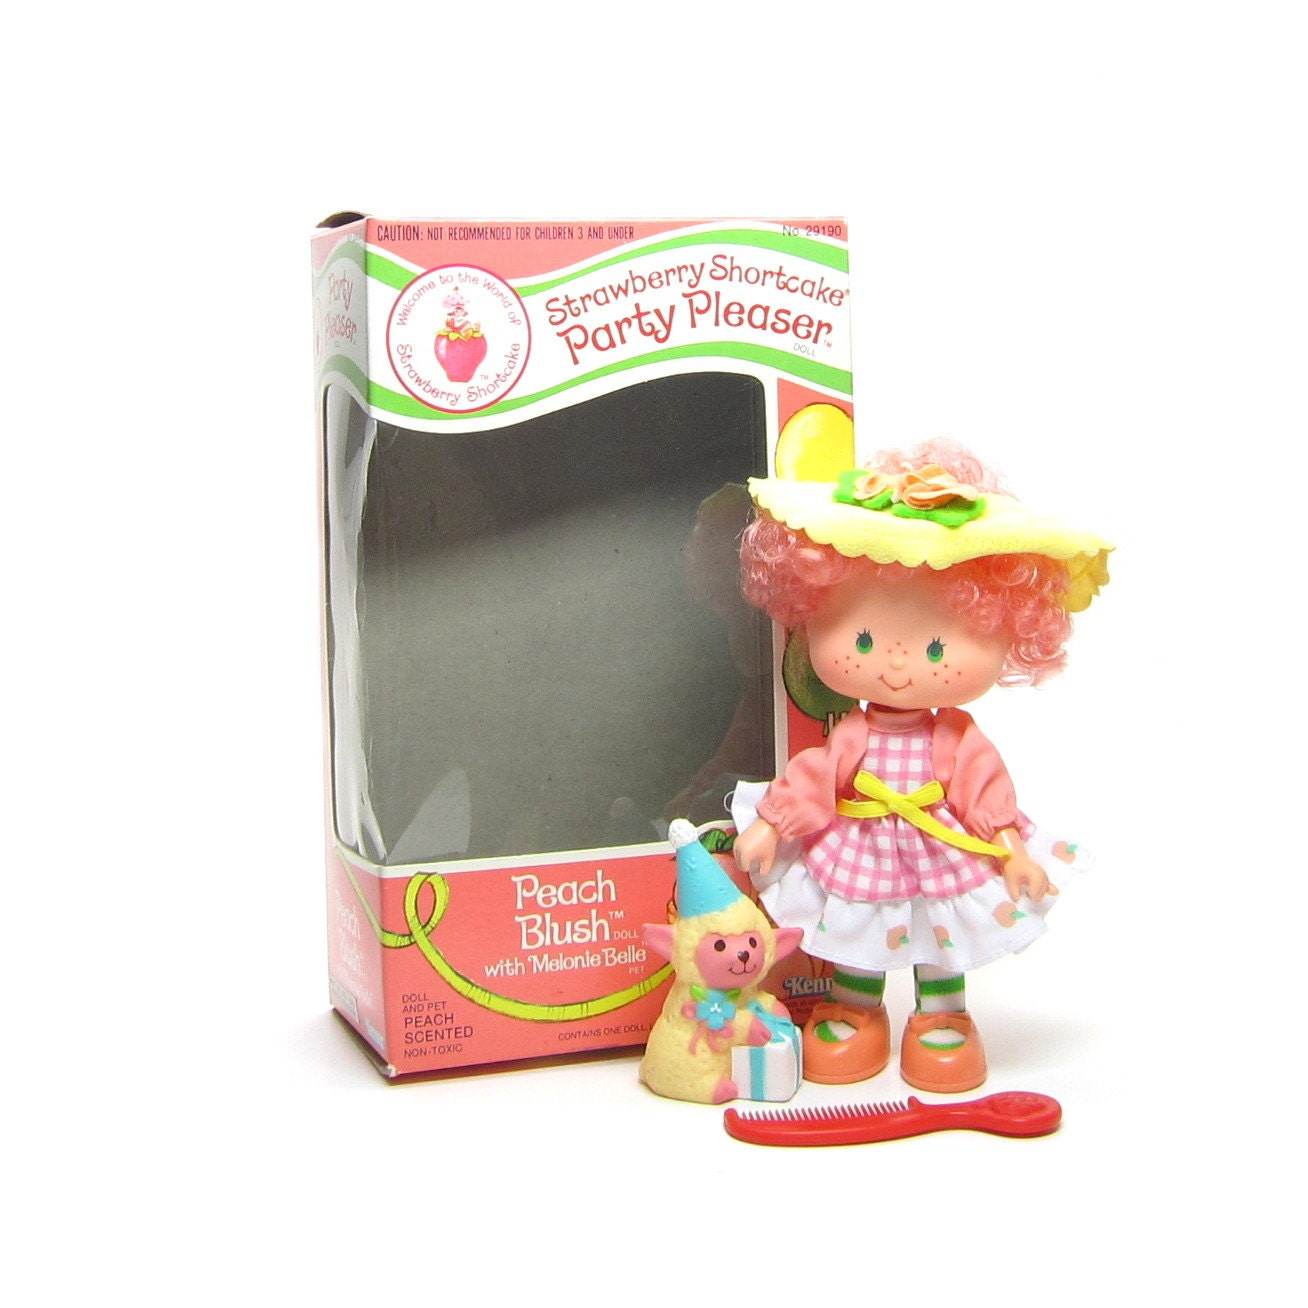 Peach Blush Doll Party Pleaser Vintage Strawberry Shortcake